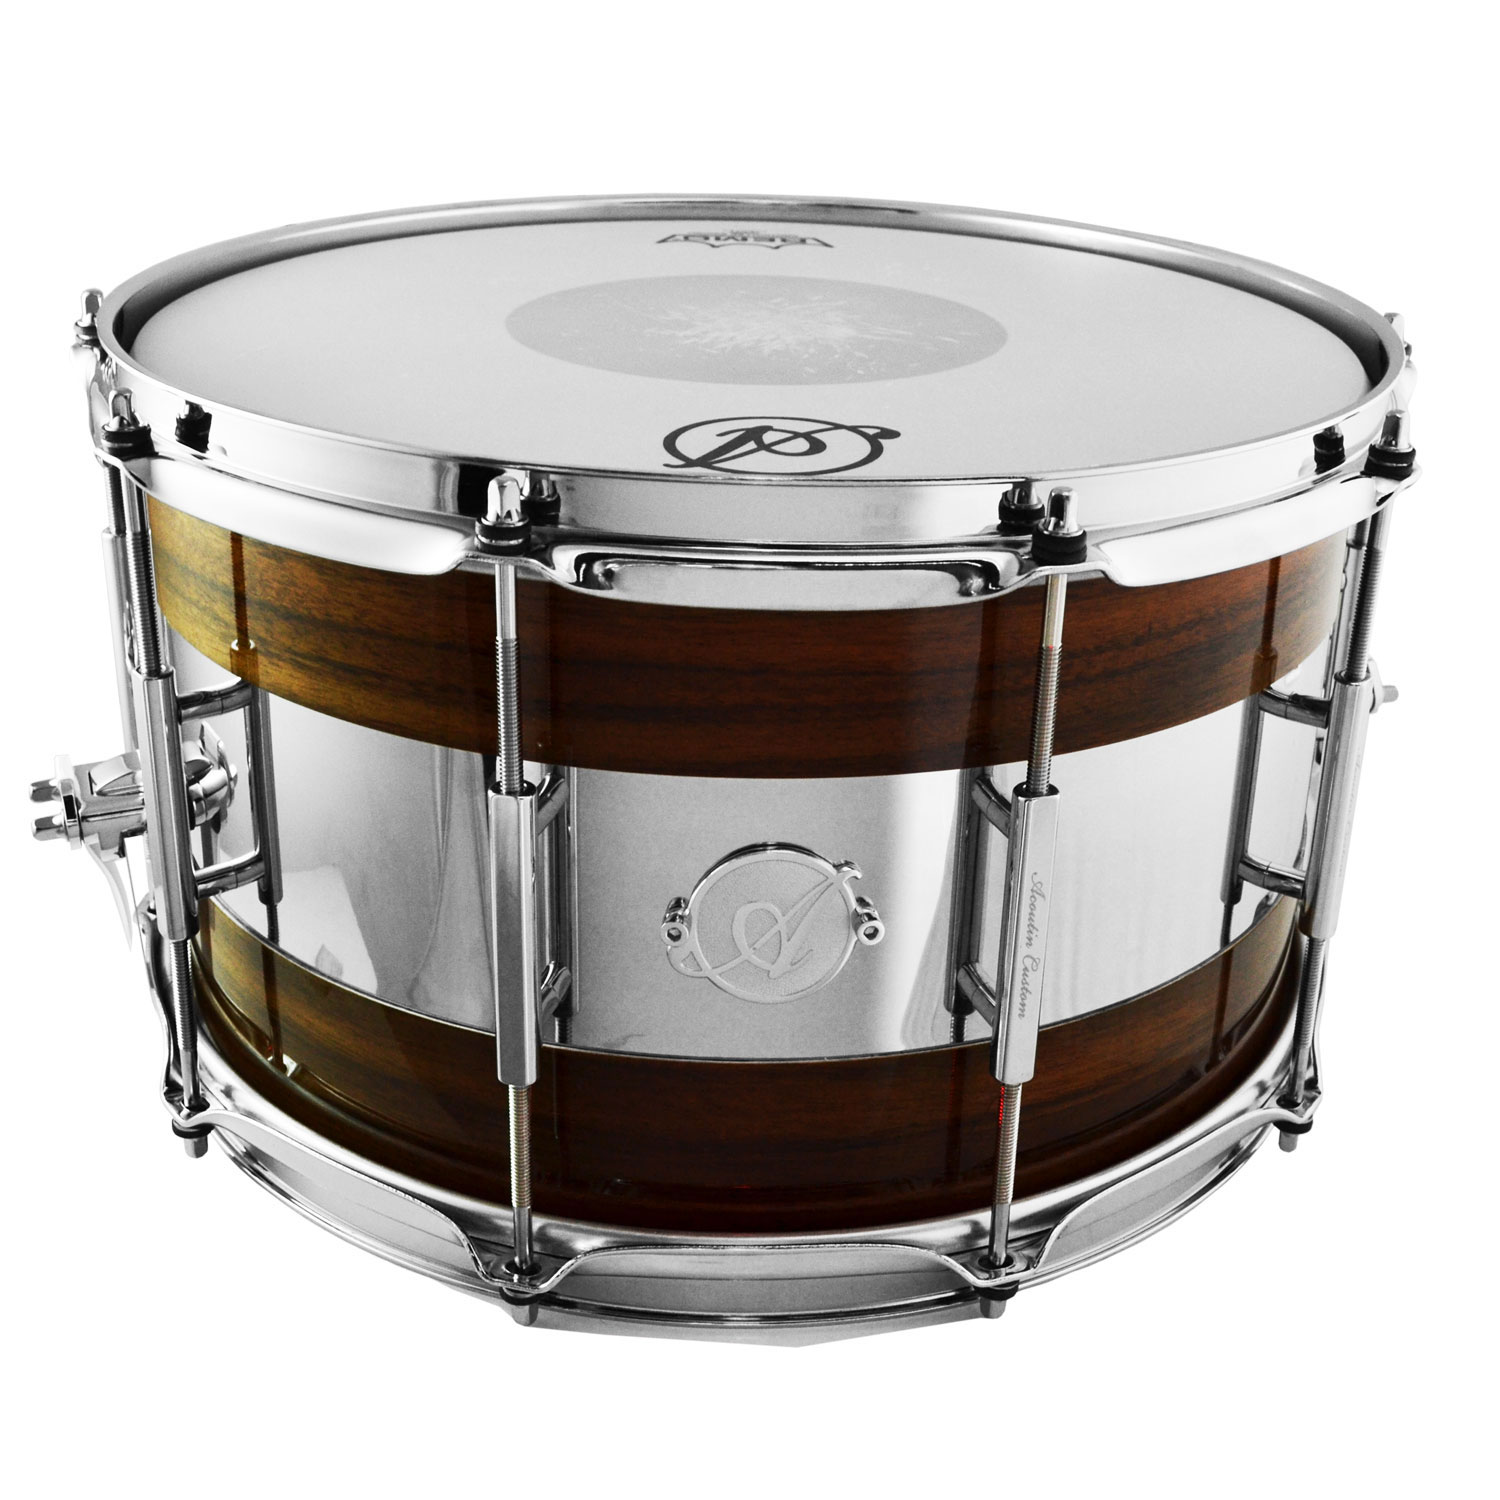 "Acoutin 8"" x 14"" Queensland Walnut & Polished Stainless Steel Snare Drum"